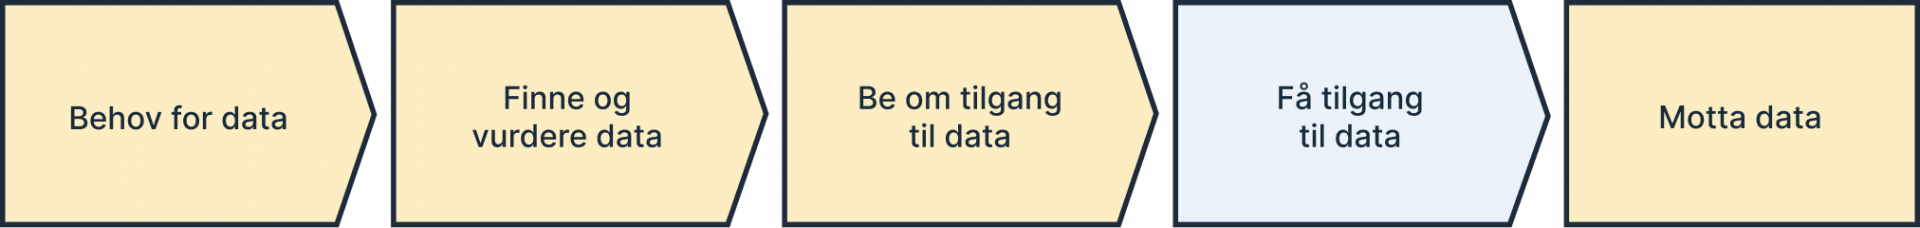 Behov for data, prosess - Steg 4 Få tilgang til data